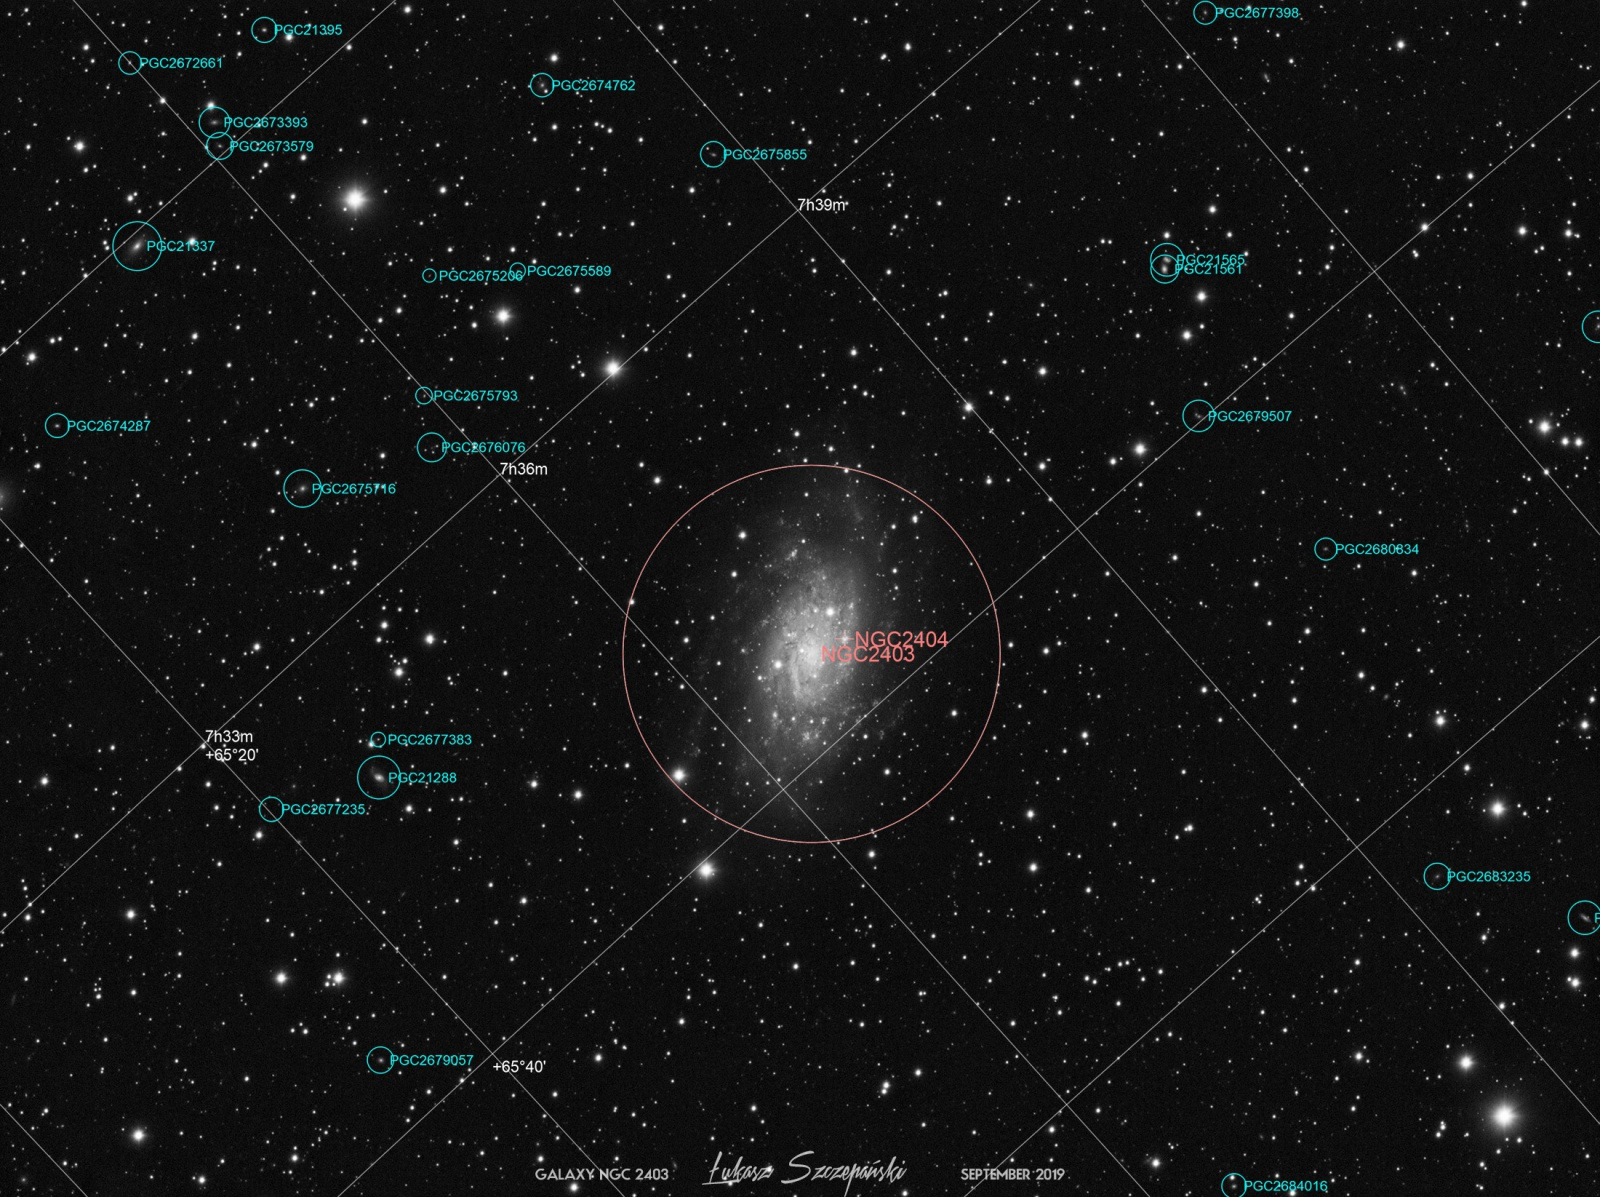 NGC2403_annotated_2200px.jpg